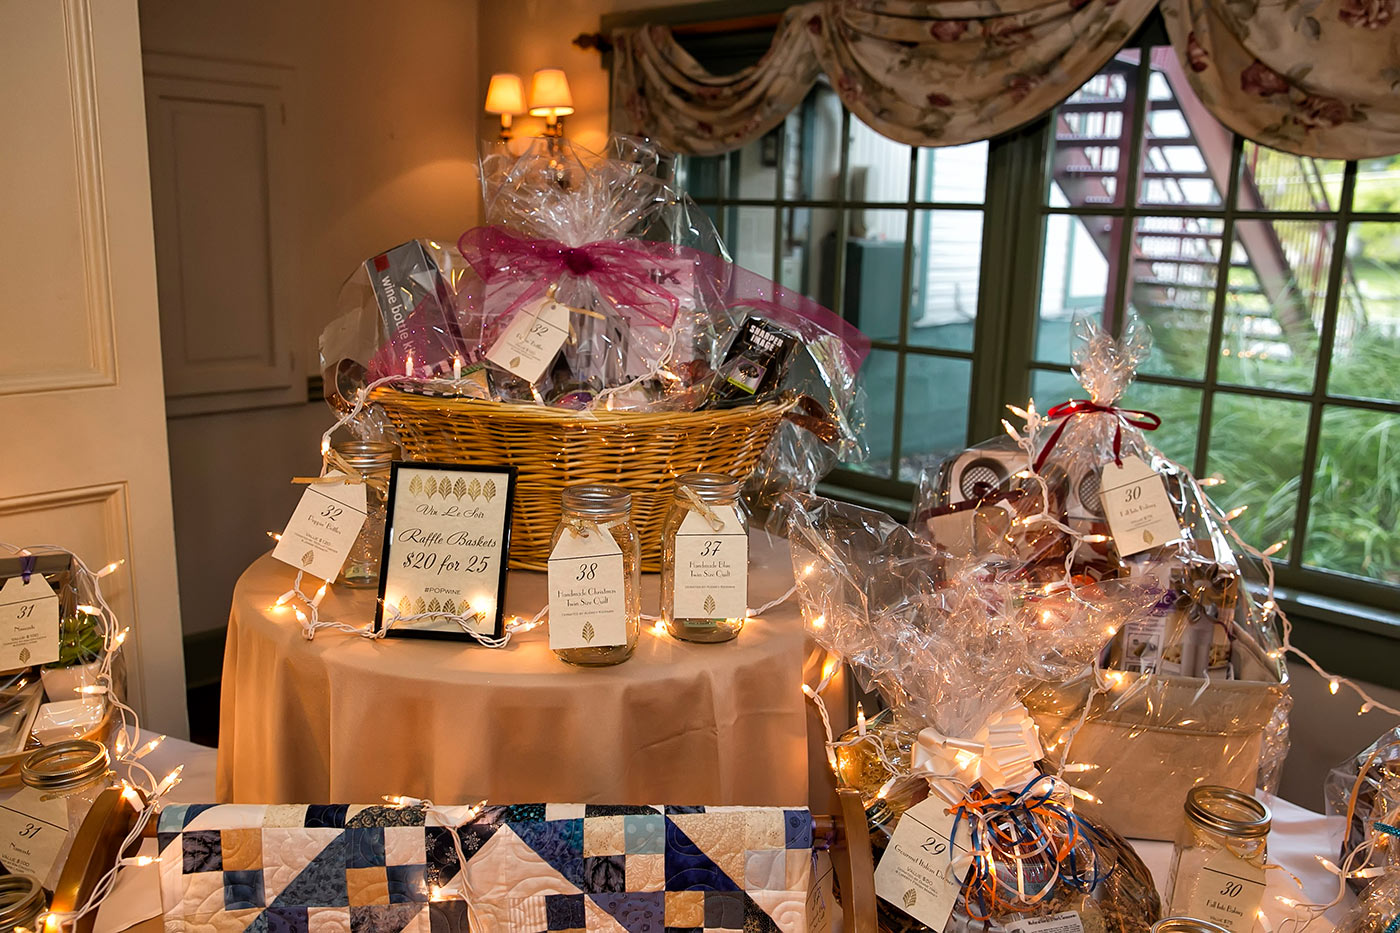 nicely decorated raffle basket